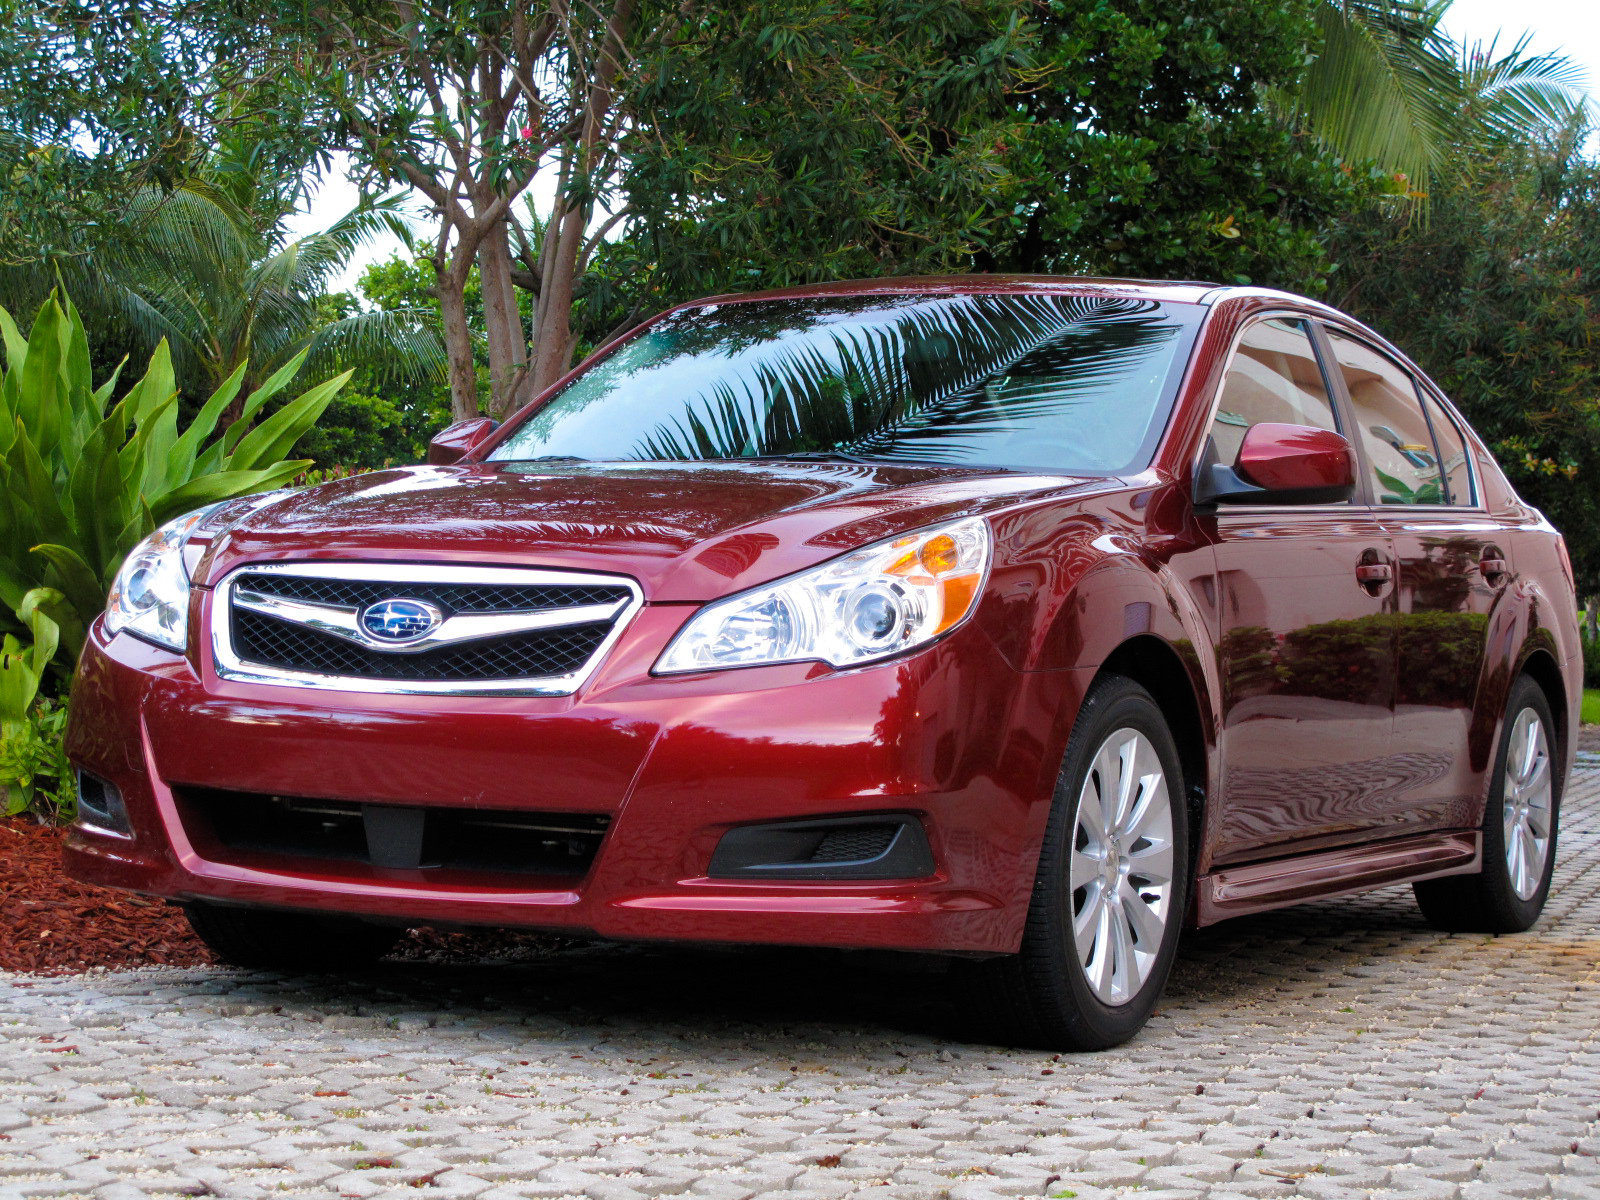 2010 subaru legacy 3 6 r review top speed. Black Bedroom Furniture Sets. Home Design Ideas